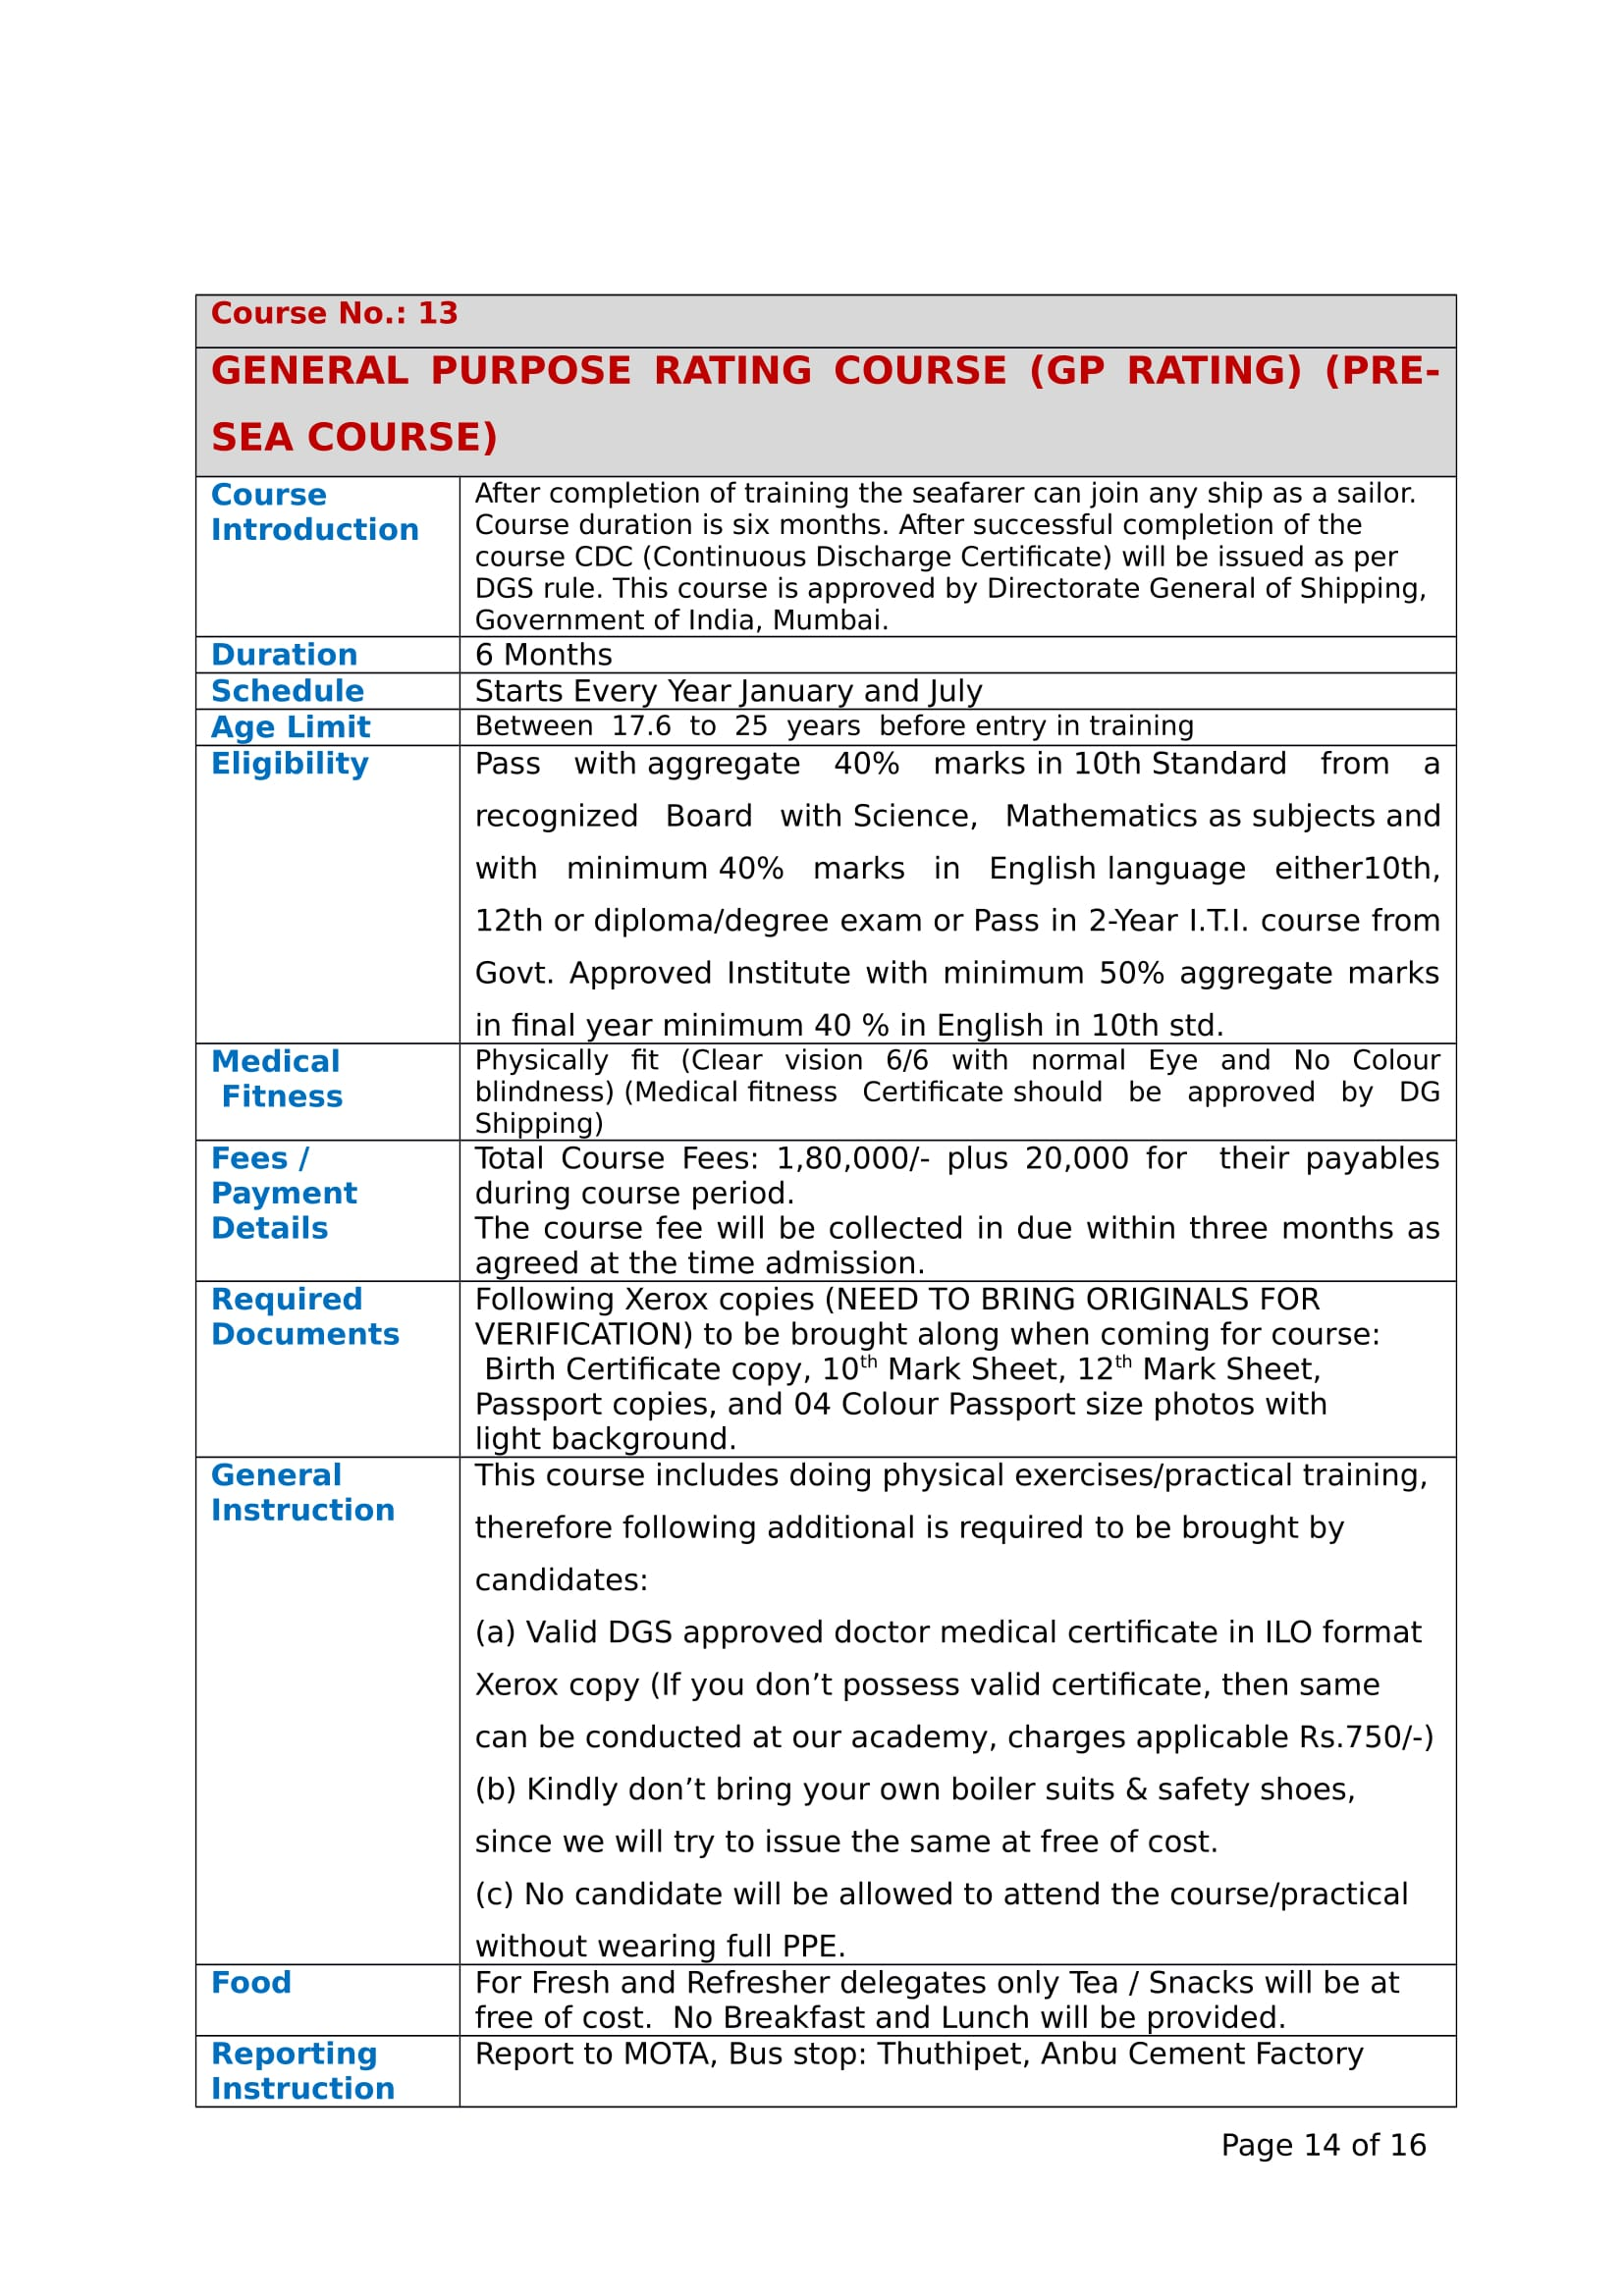 Annexure-1 -Full Course Details-14